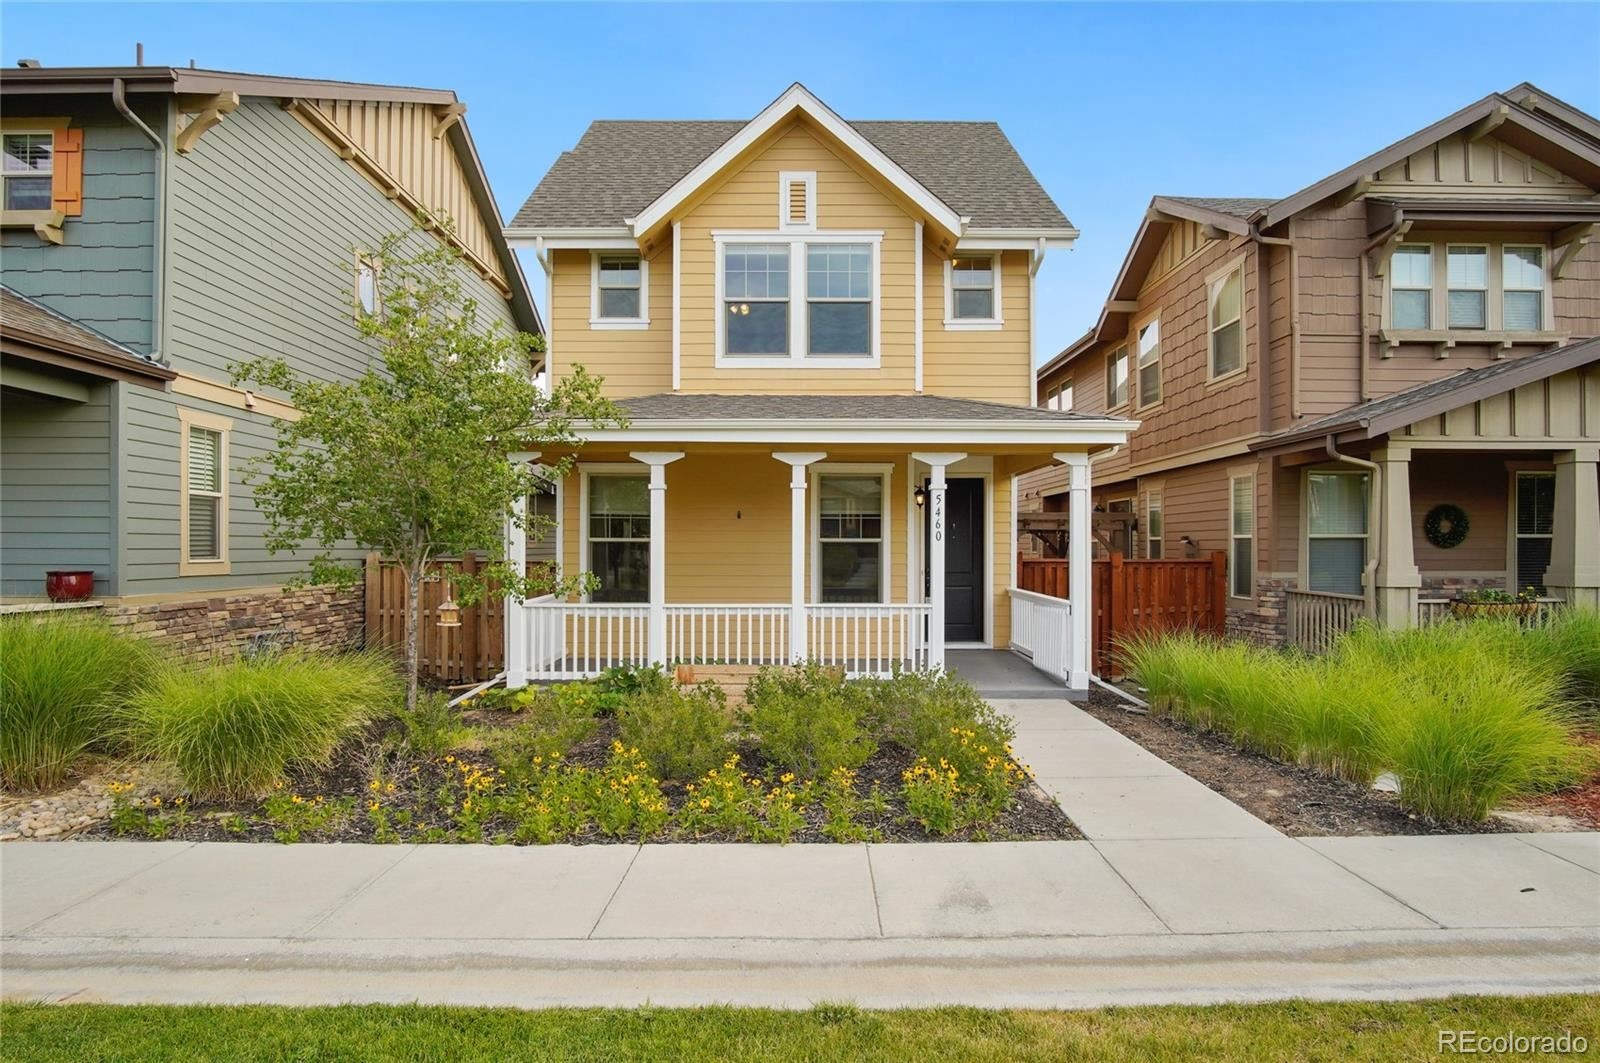 5460 Xenia Street, Denver, CO 80238 - #: 4249243